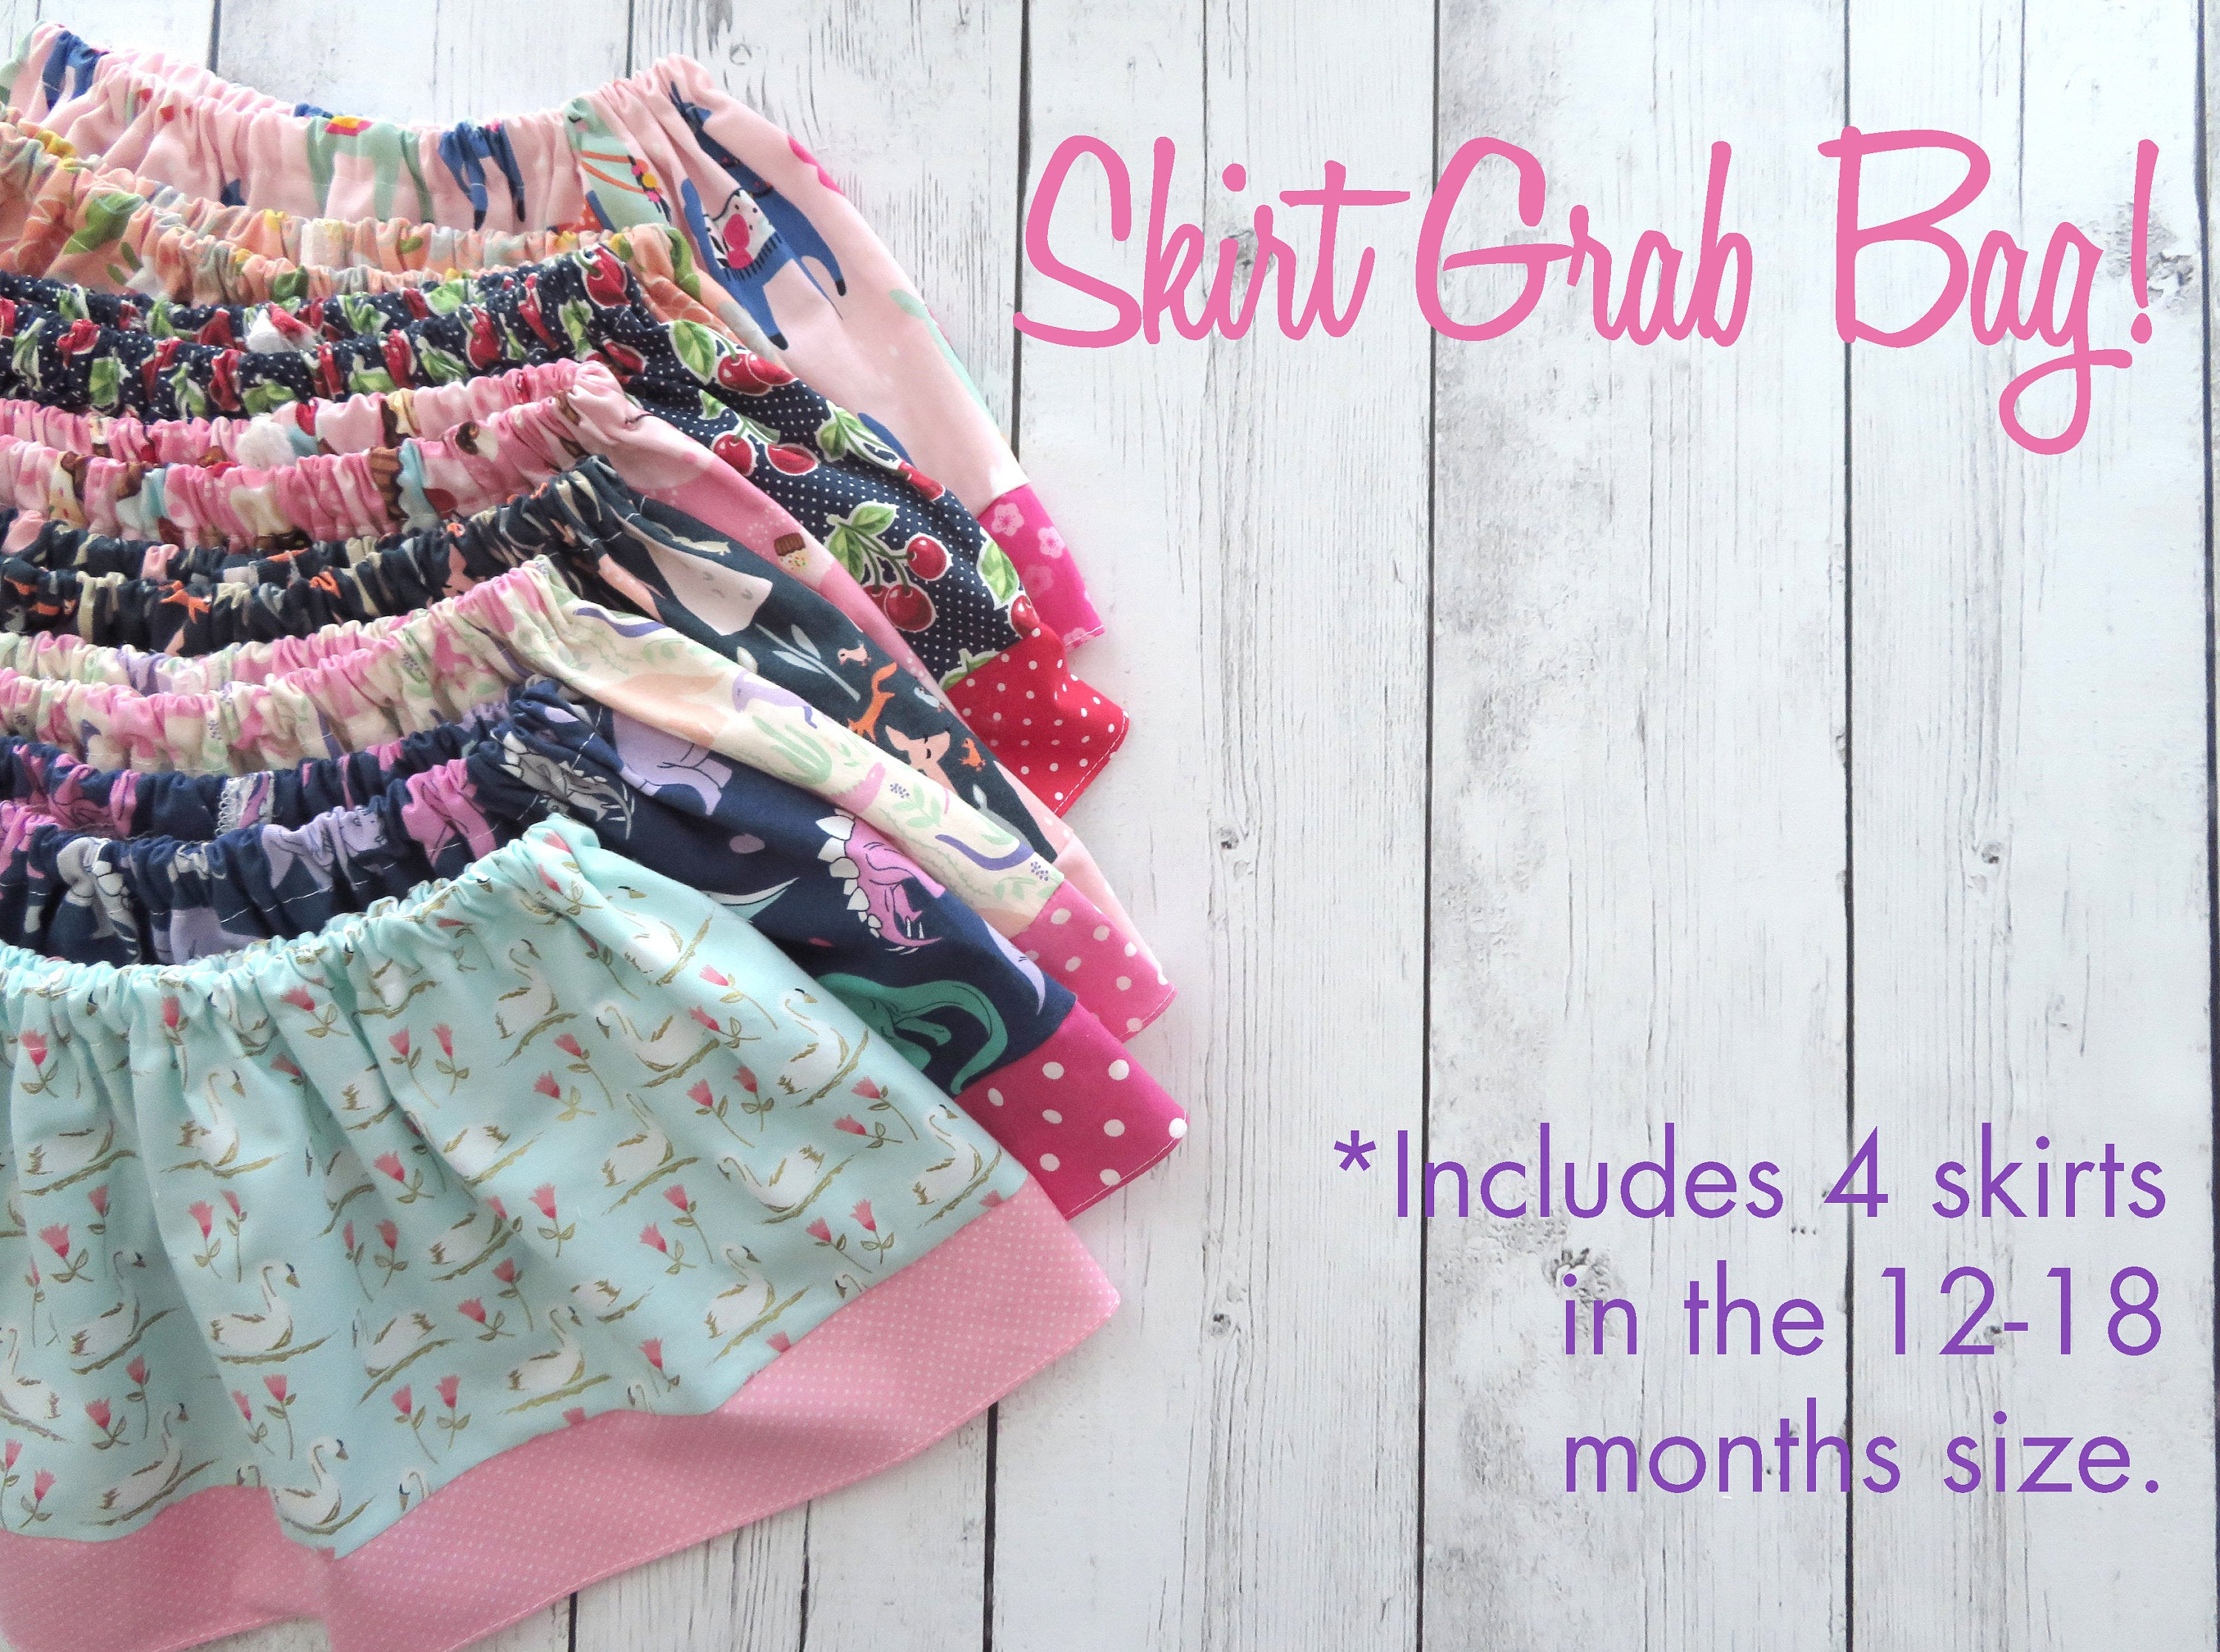 Skirt Grab Bag for Baby Girl - clearance skirts, baby girl skirts, 12-8 month skirt, baby shower gift, add-on item, sale skirts,